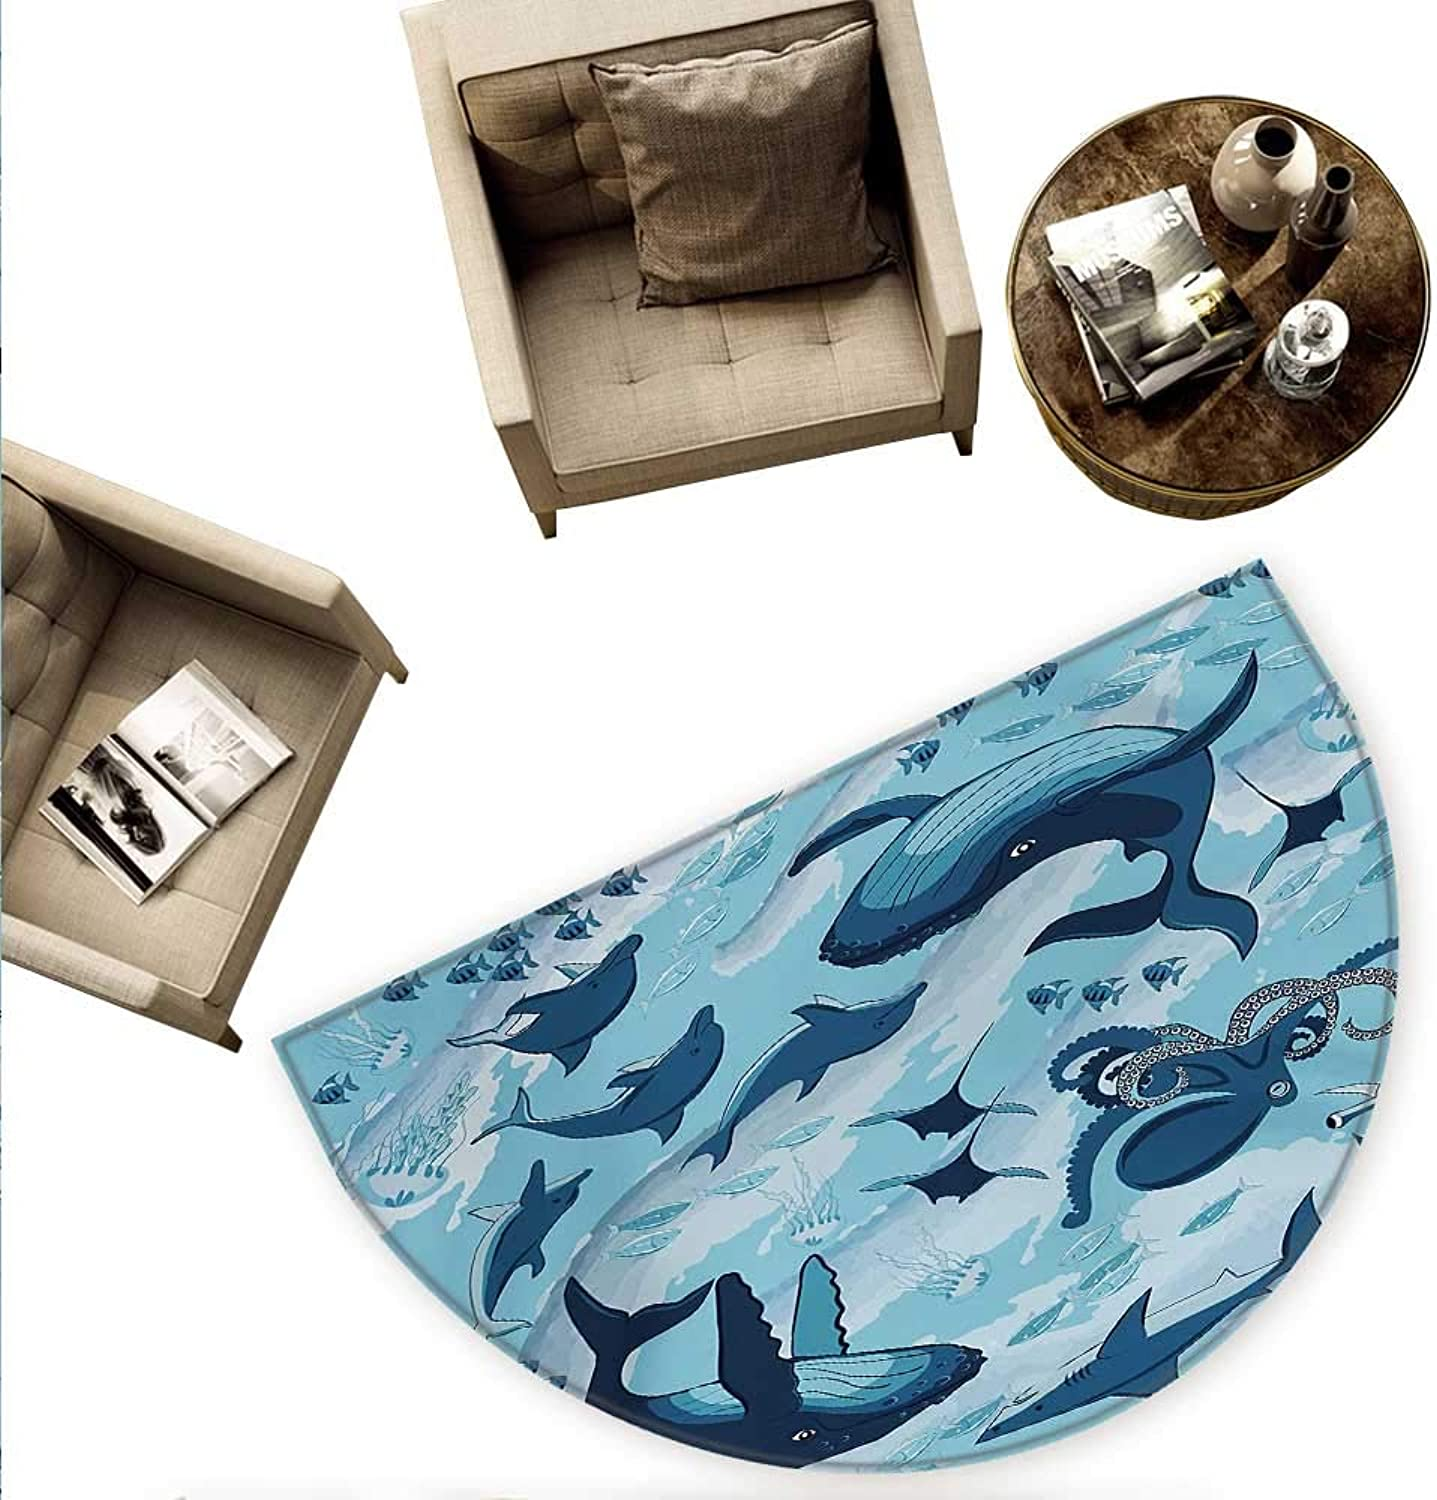 Shark Semicircular Cushion Inhabitants of Ocean Sharks Whales Dolphins Octopus Jellyfish Starfish with Waves Image Entry Door Mat H 70.8  xD 106.3  bluee